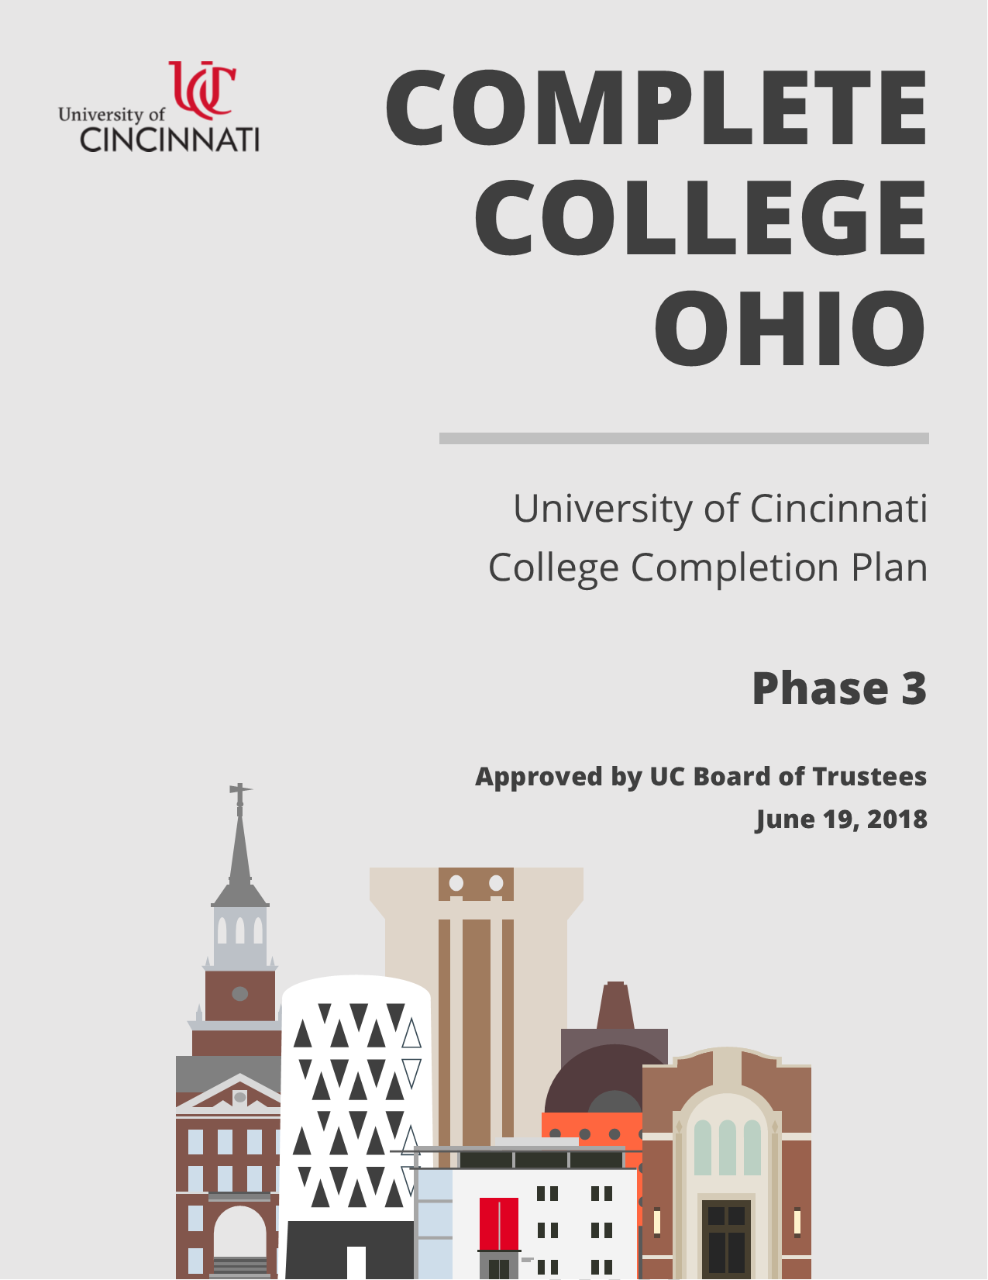 Complete College Ohio - College Completion Plan Phase 3 - June 2018